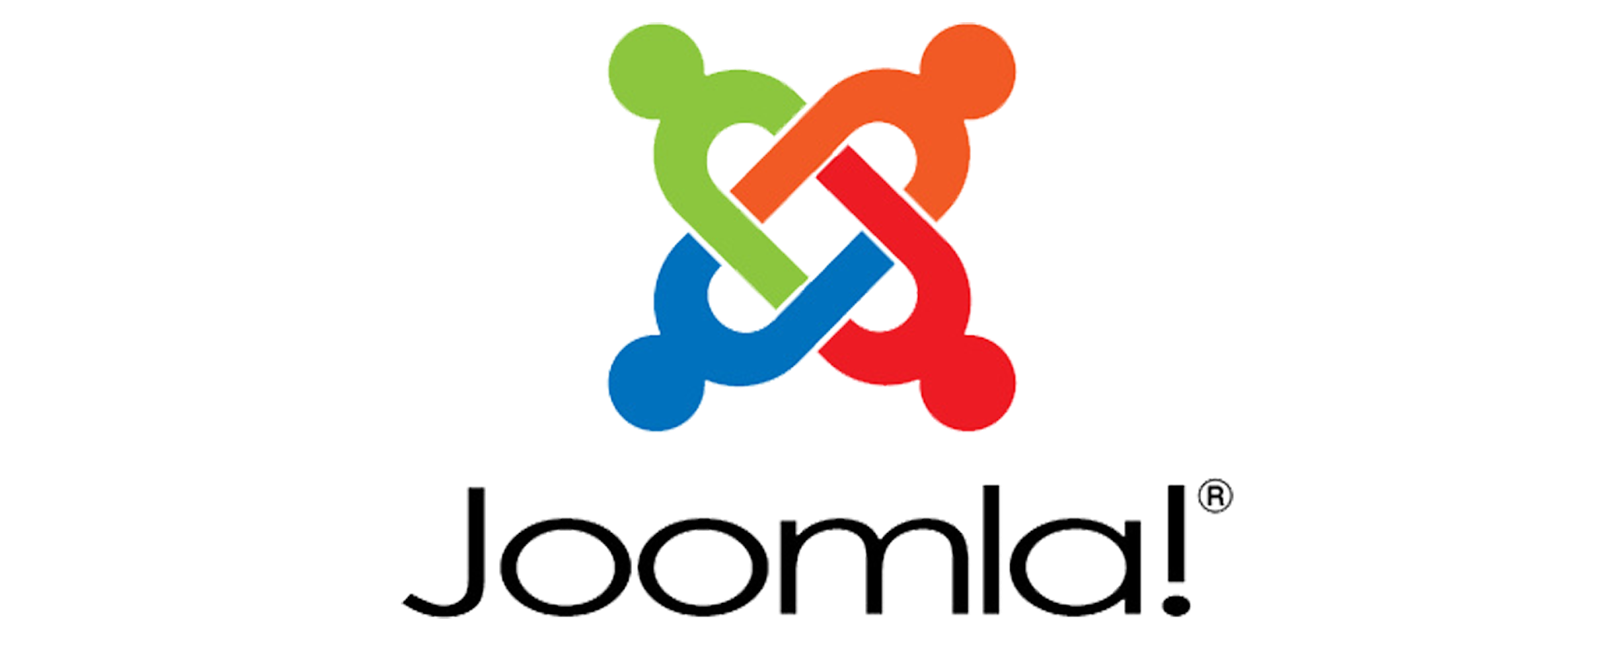 Drupal Joomla WordPress